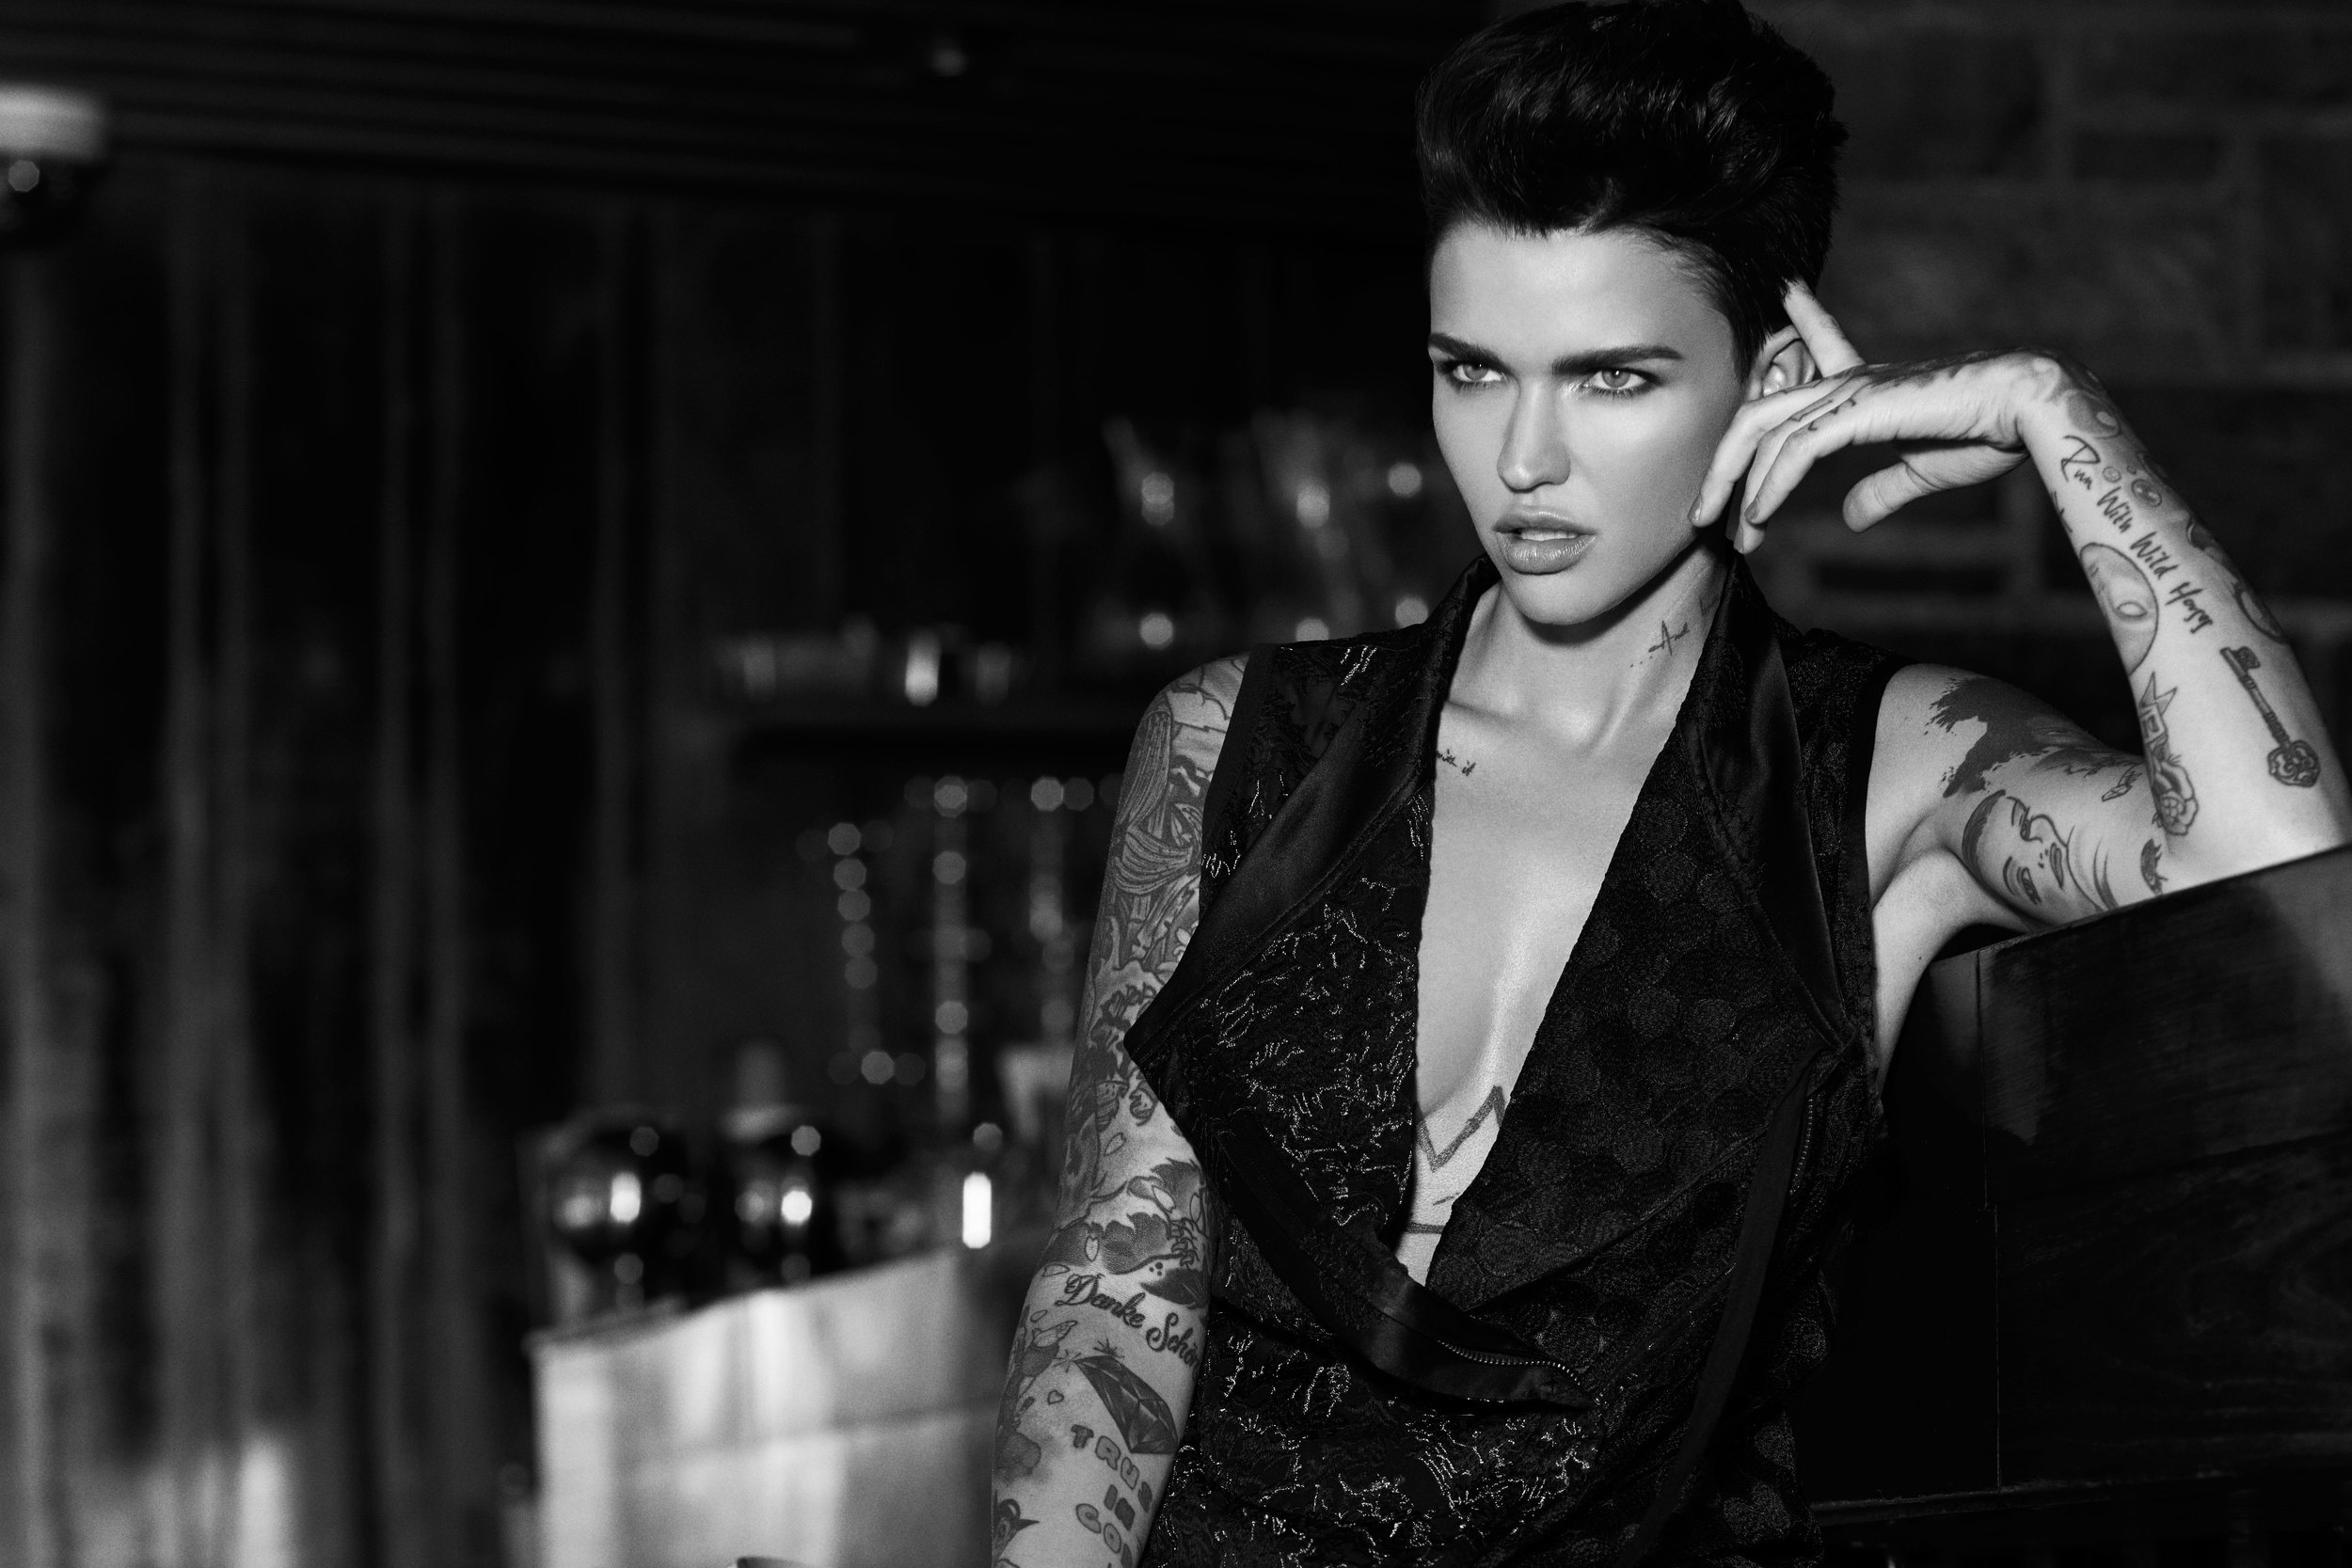 Ruby Rose Monochrome HD Celebrities 4k Wallpapers Images